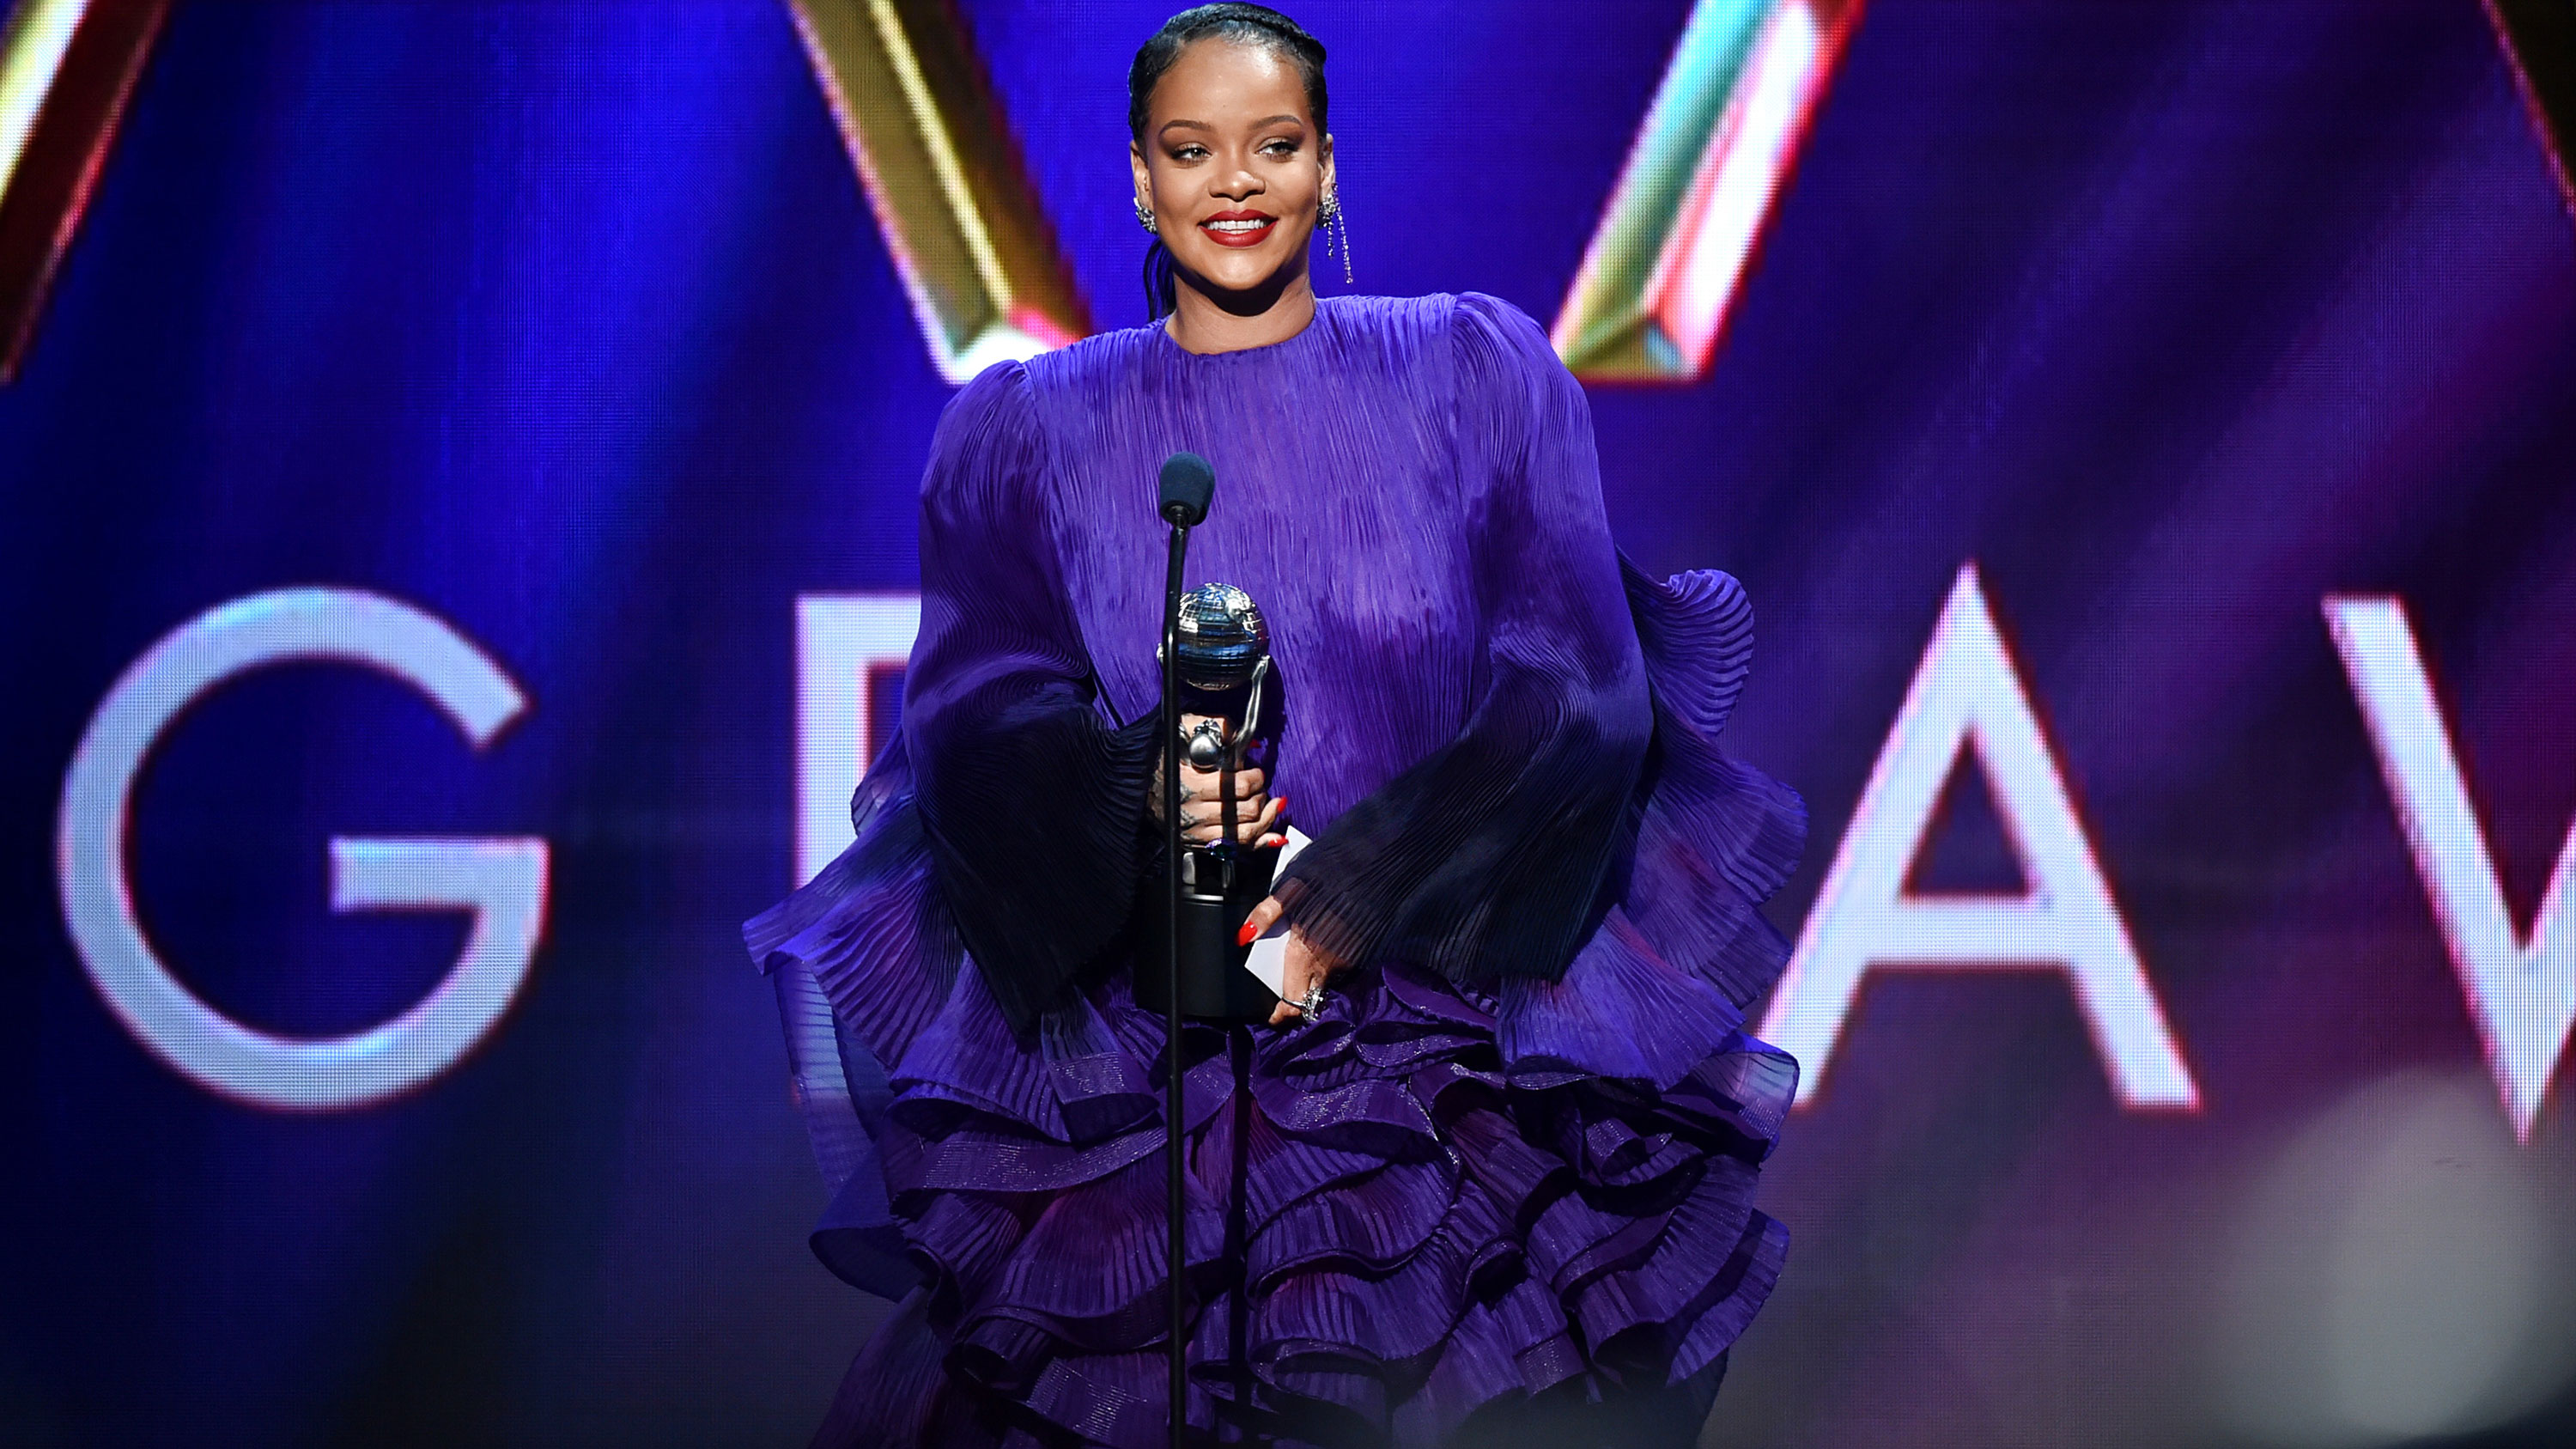 Rihanna calls on friends and allies to 'pull up' during powerful speech at 2020 NAACP Image Awards